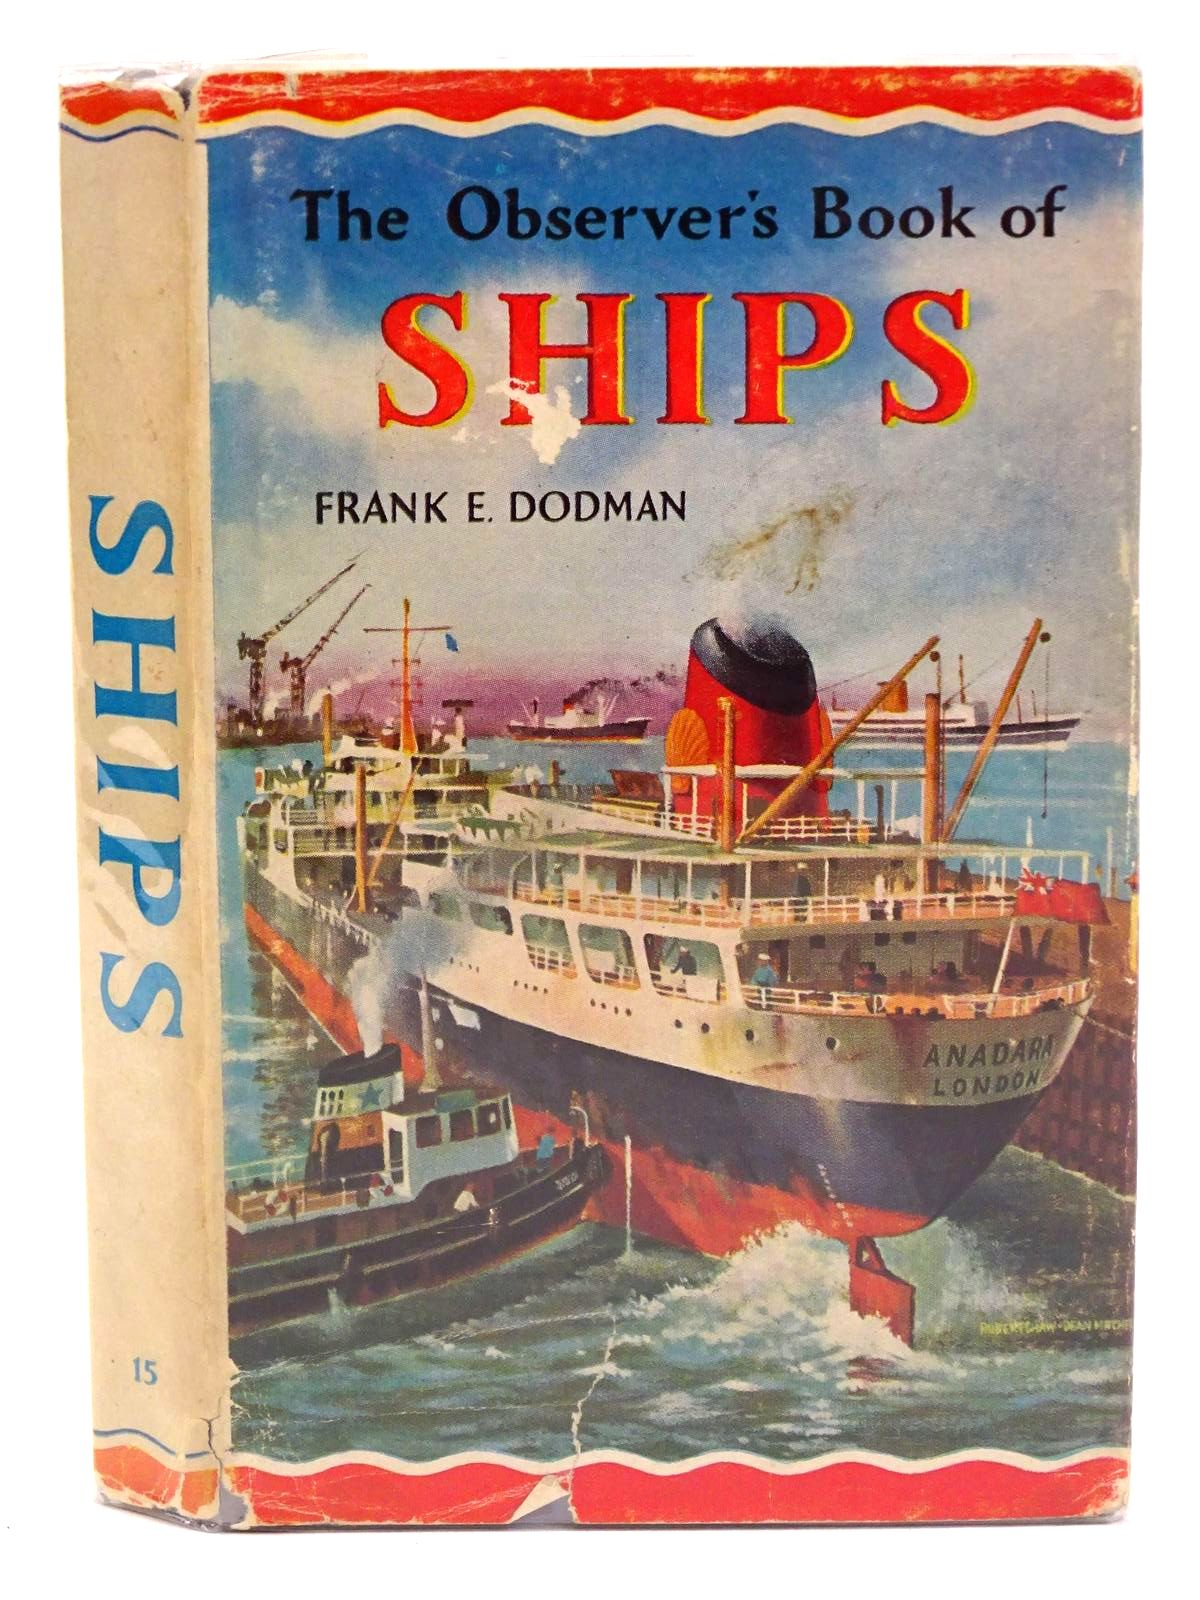 Photo of THE OBSERVER'S BOOK OF SHIPS written by Dodman, Frank E. published by Frederick Warne & Co Ltd. (STOCK CODE: 1318367)  for sale by Stella & Rose's Books